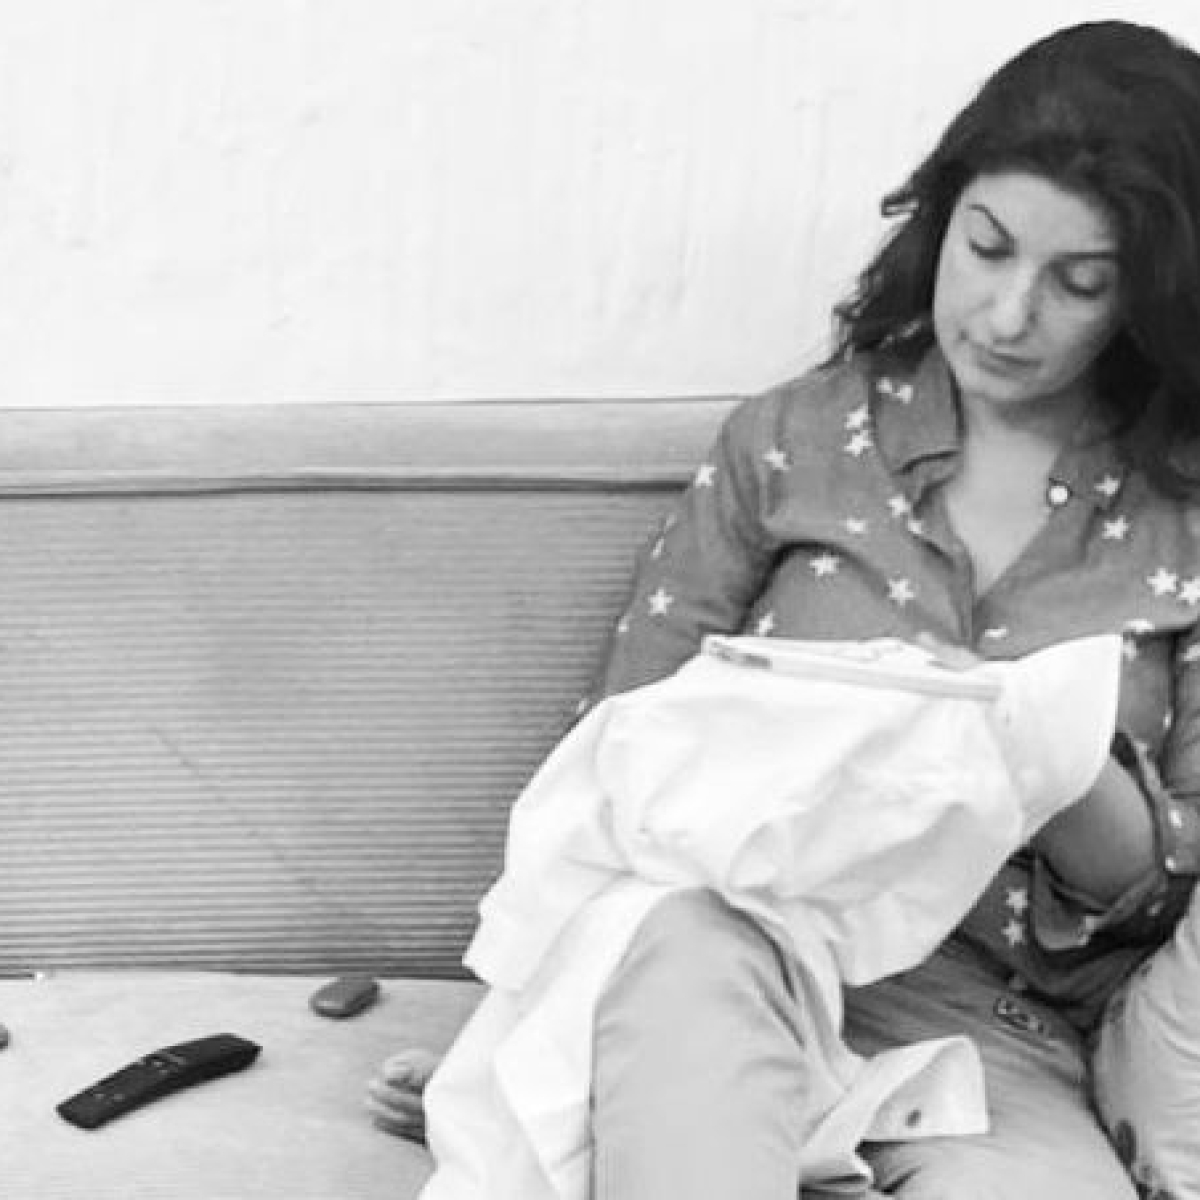 Twinkle Khanna has an epic reply to troll who asked if she has a 'device' to click 'such' pics